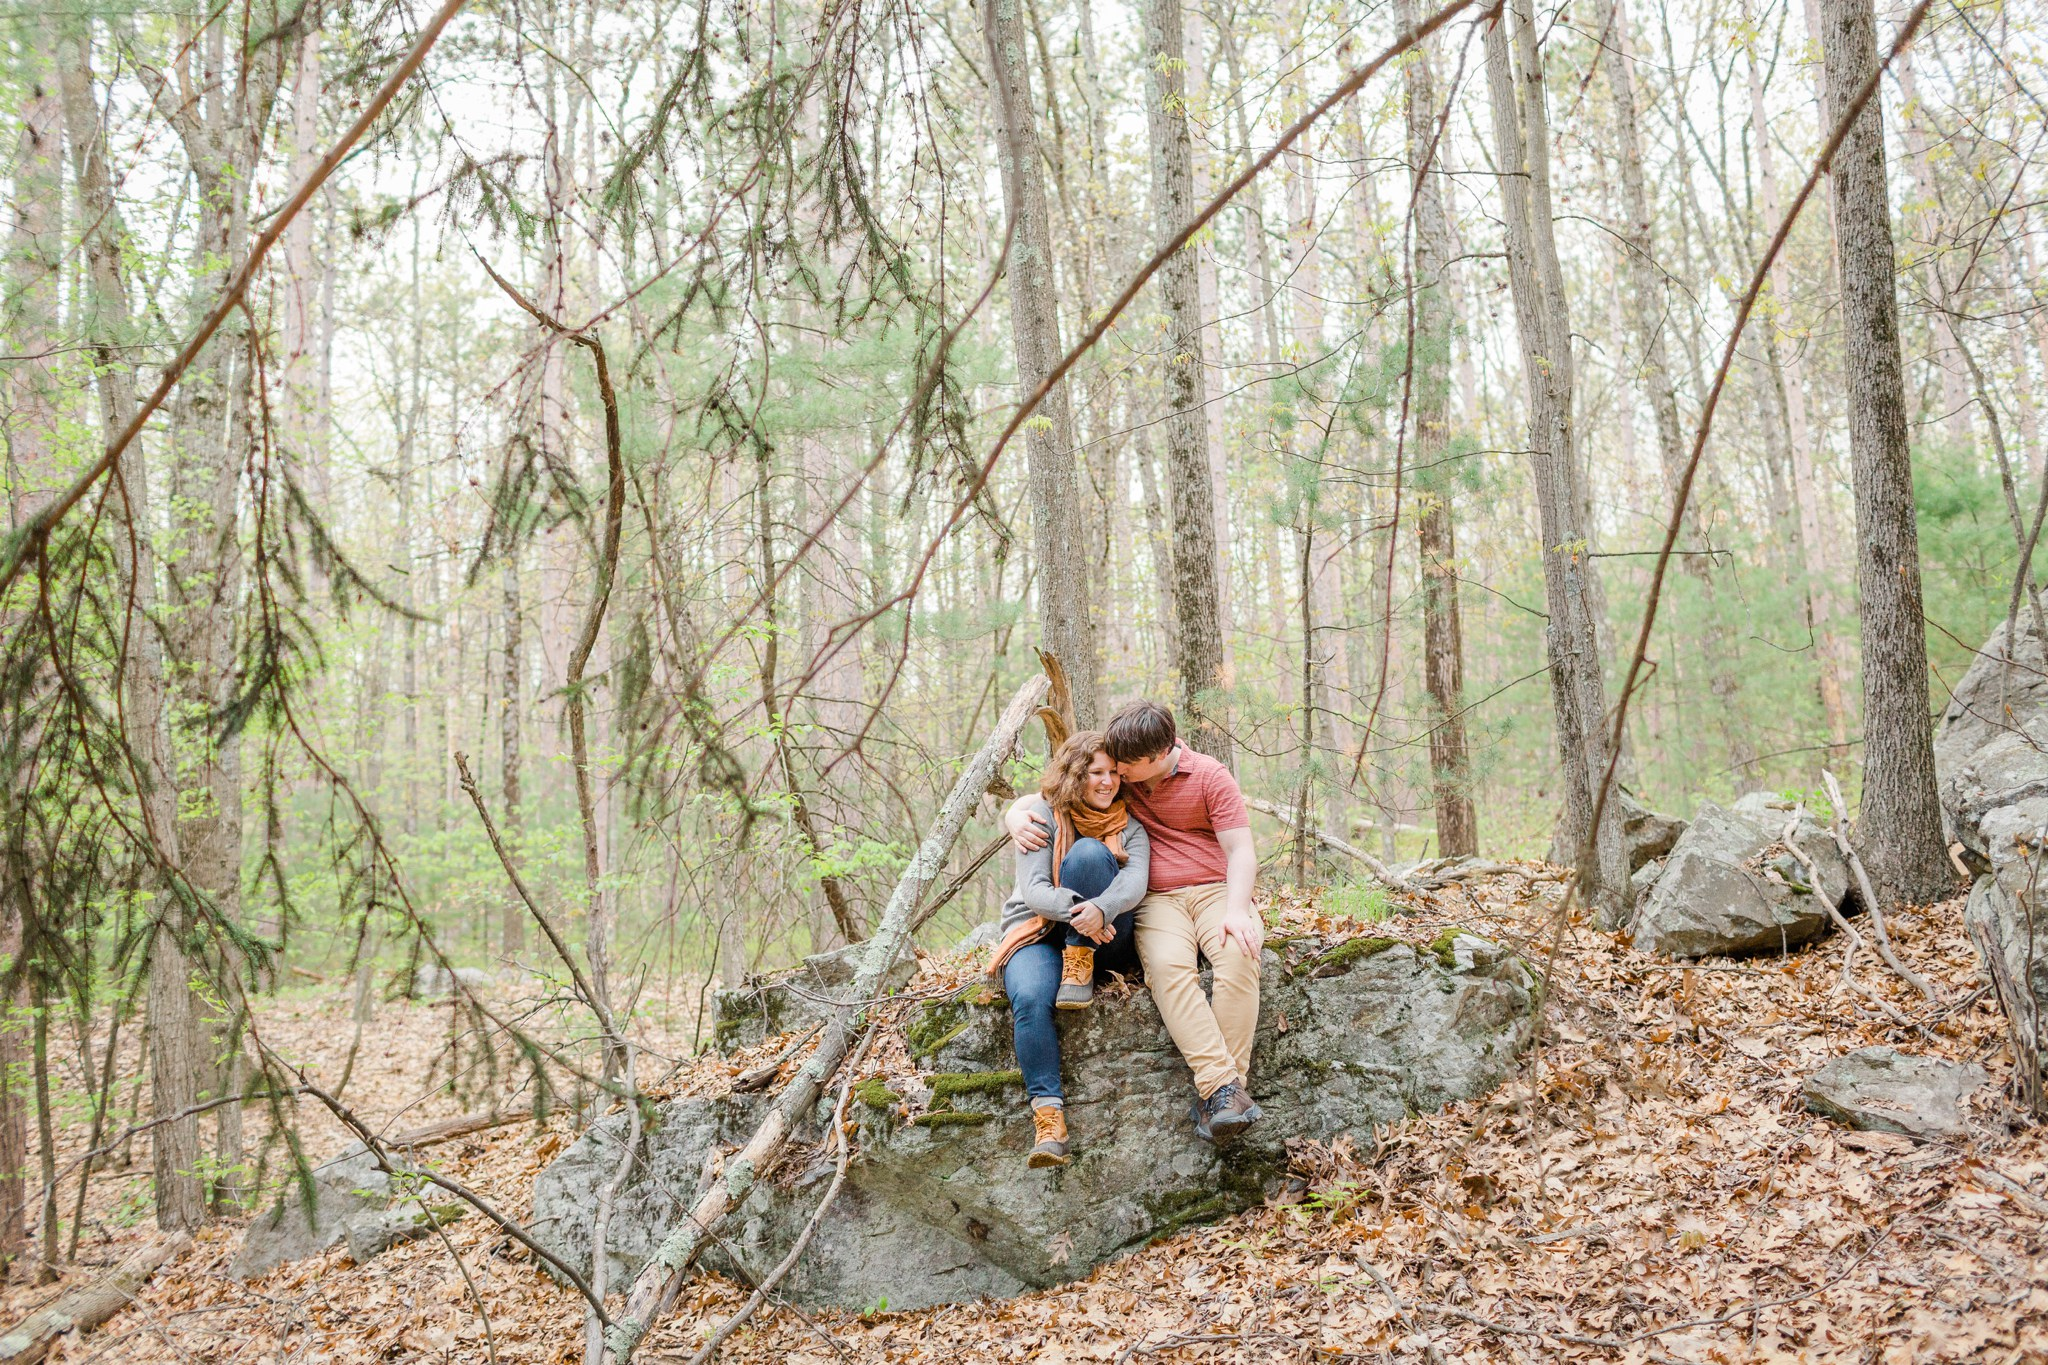 deborah_zoe_photography_engagement_session_0100.JPG